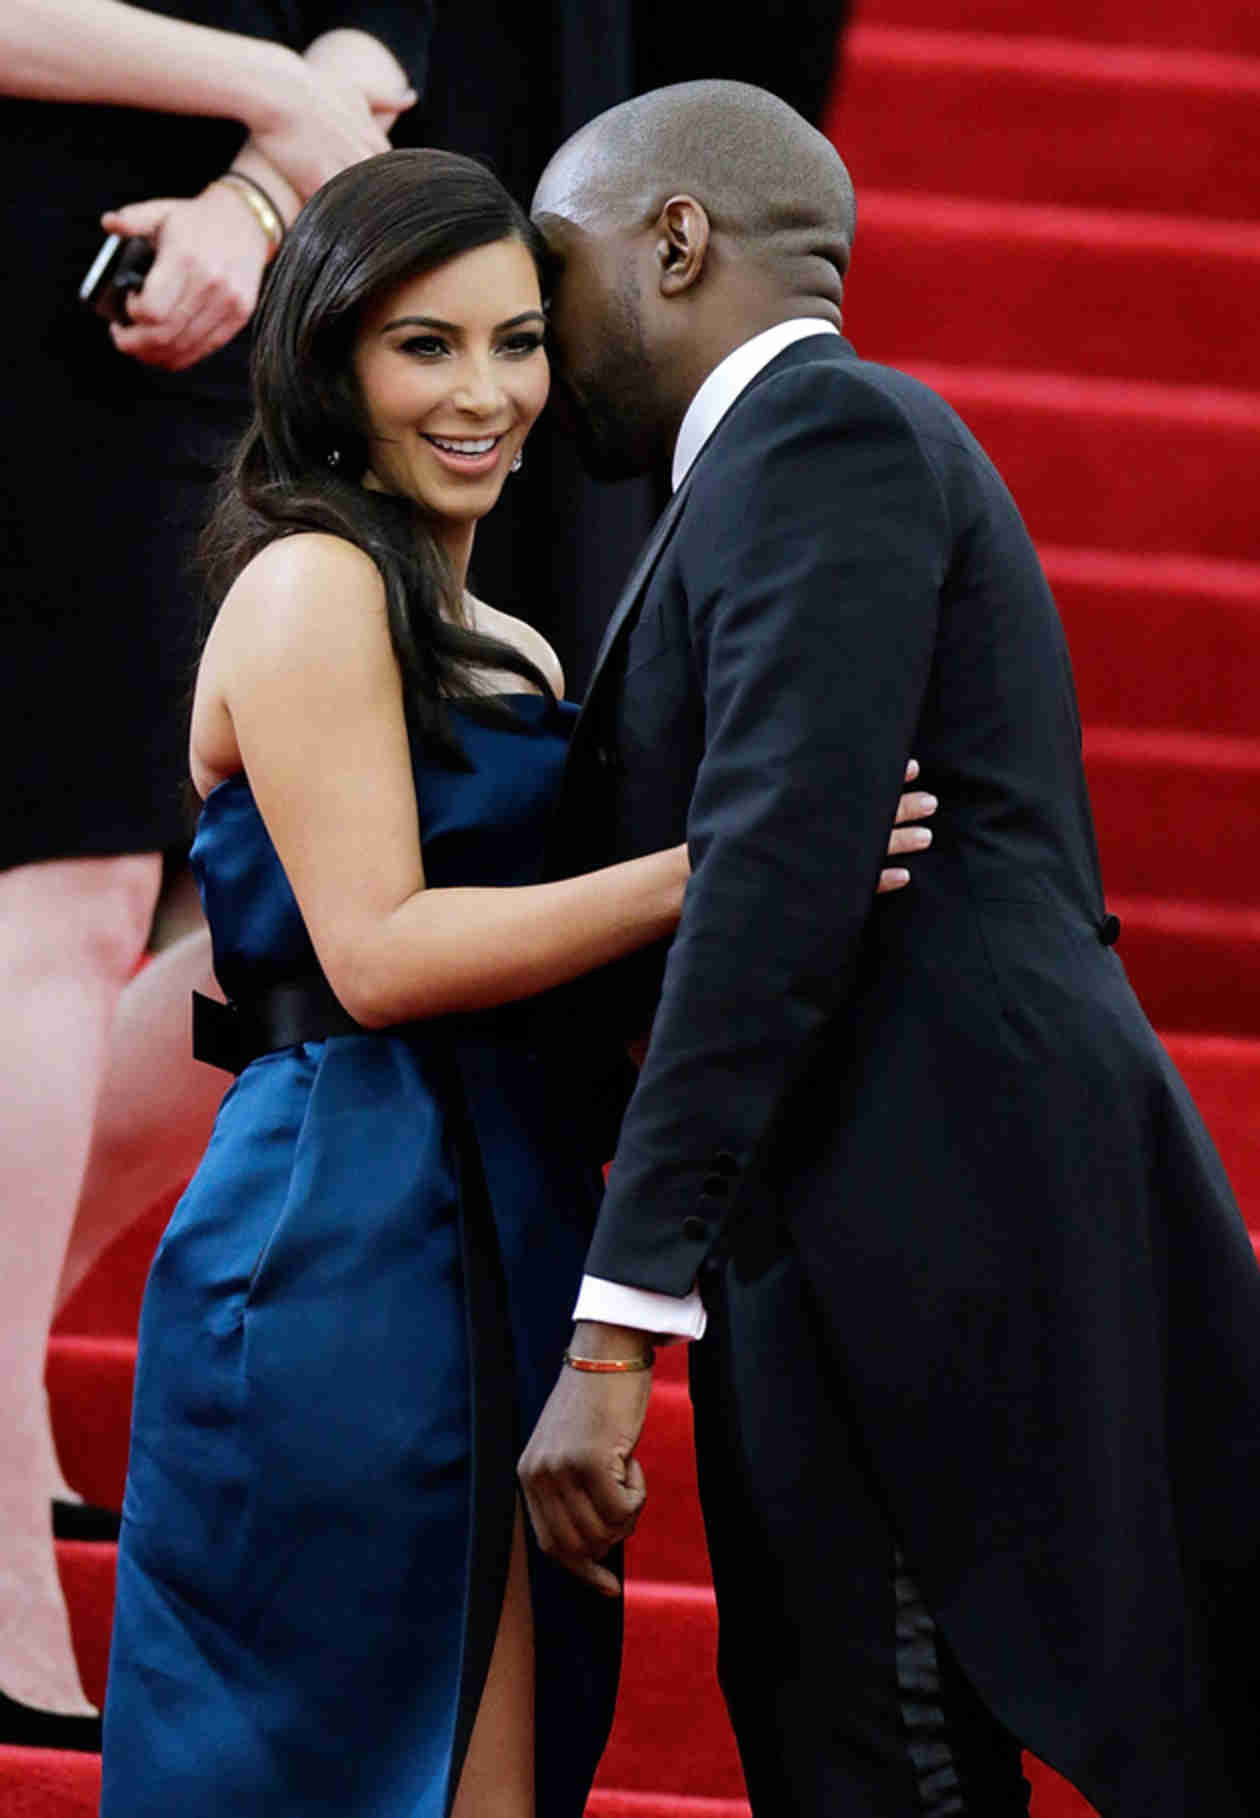 Kim Kardashian and Kanye West Buy a $20 Million House! All the Details